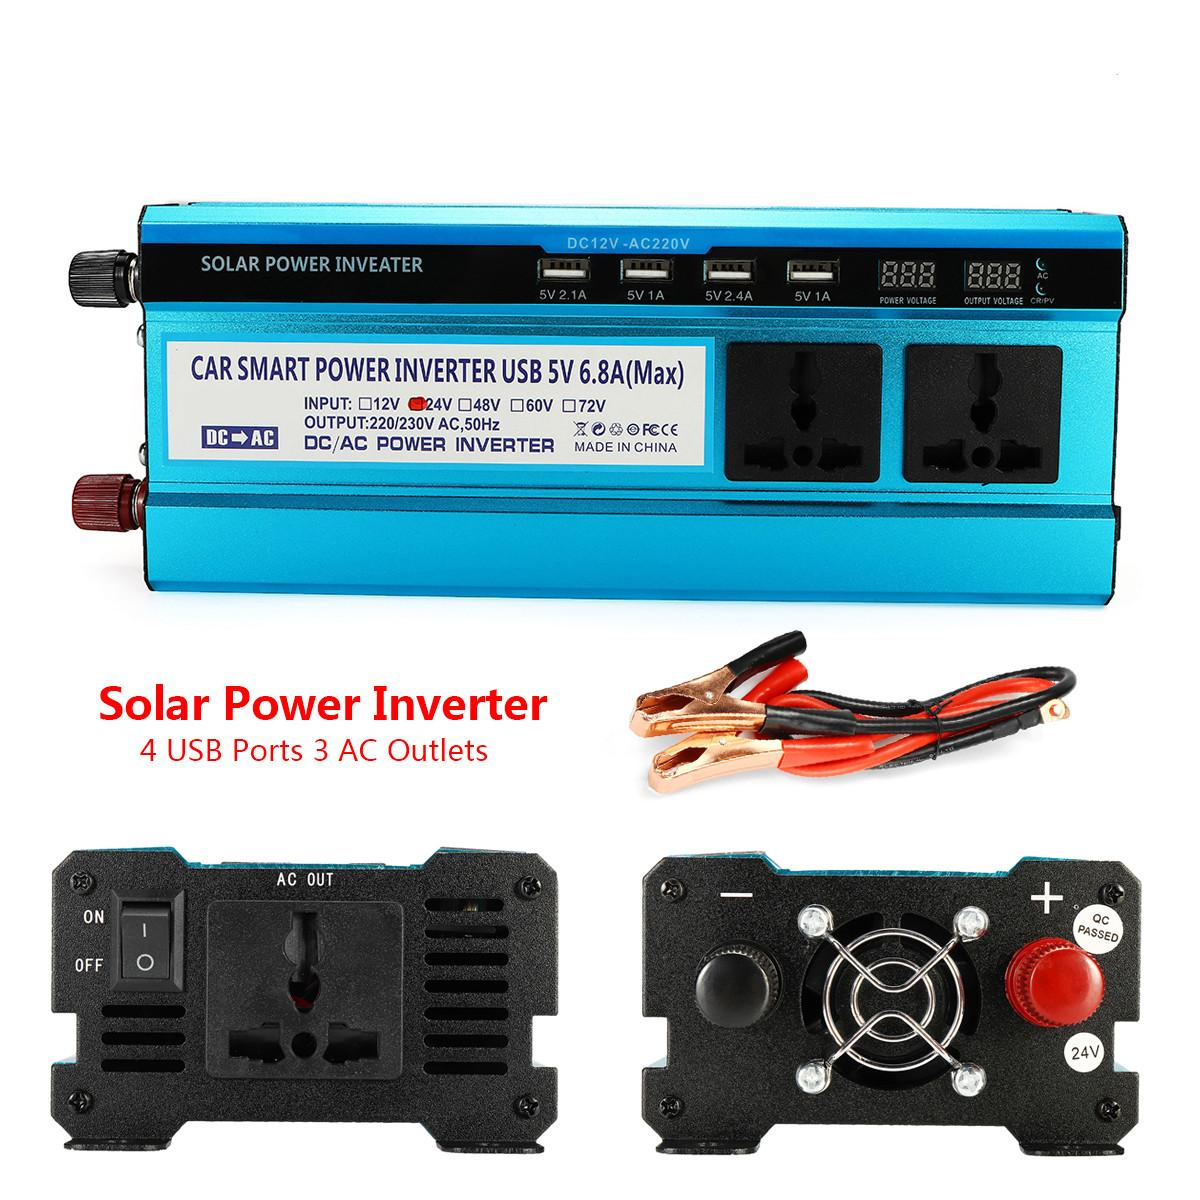 4000W DC 12/ 24V to AC 220V Portable Car Power Inverter Car LCD Solar Power Inverter Modified Sine Wave USB Charger Adapter